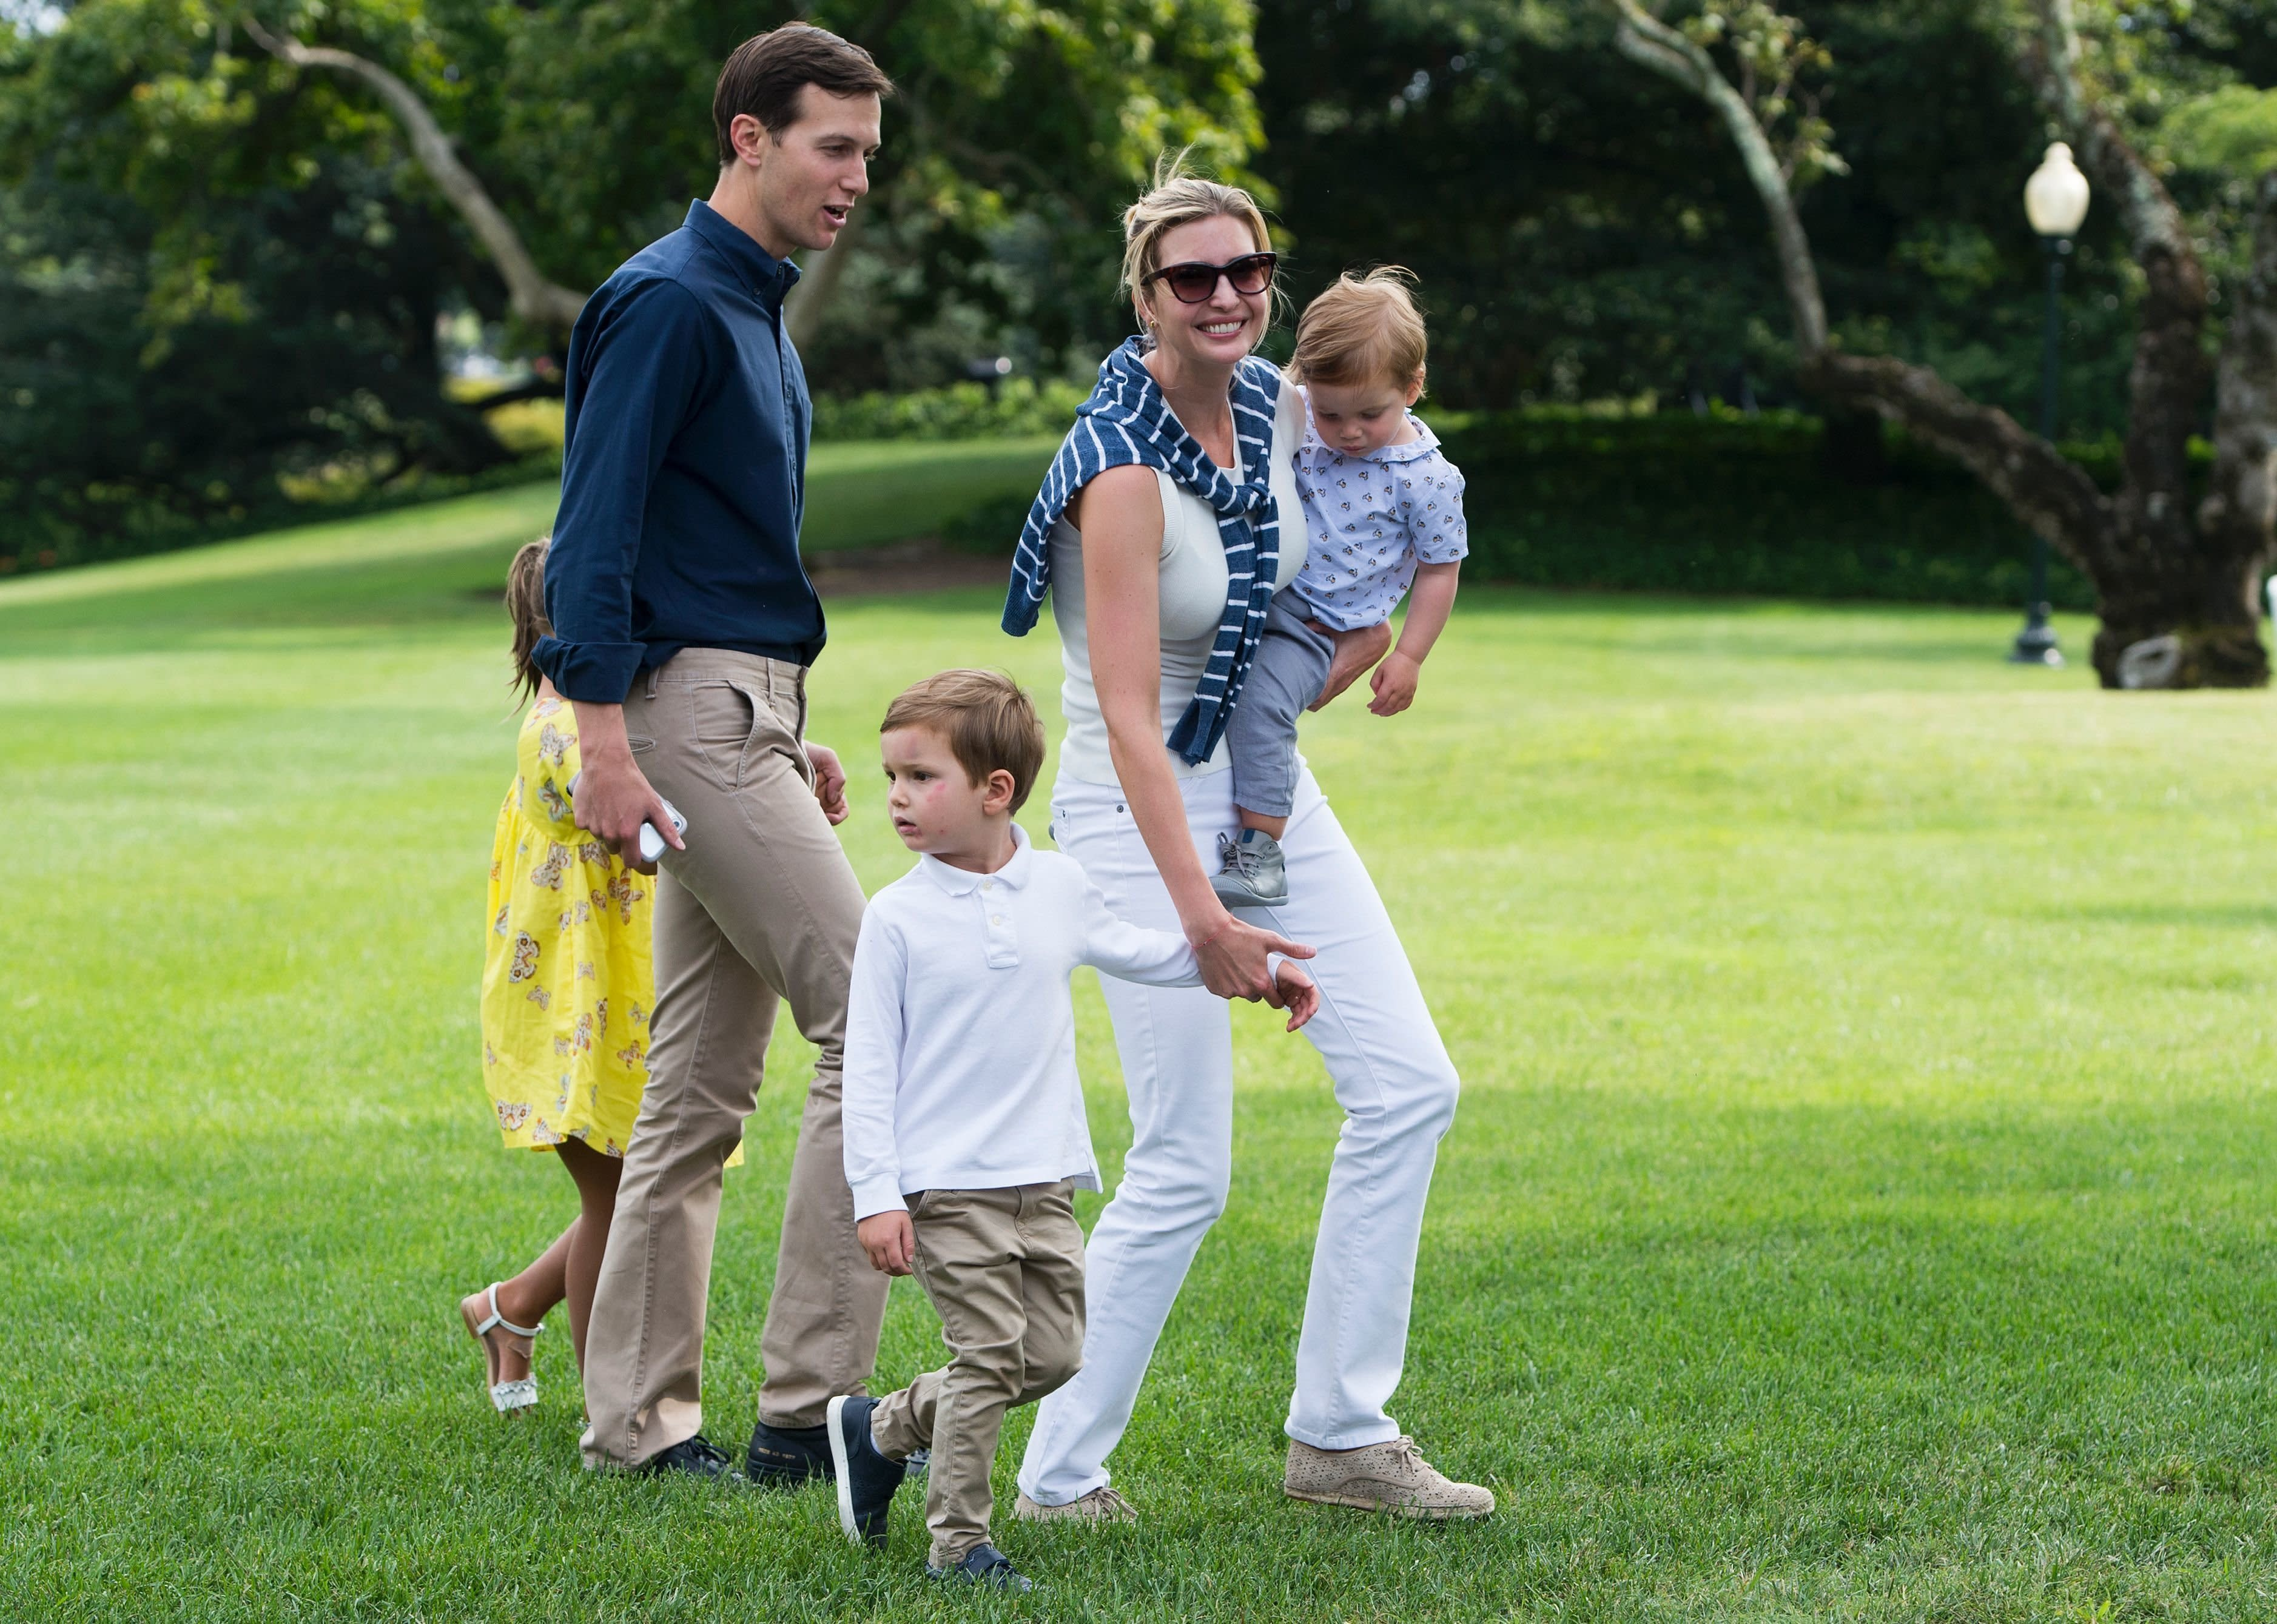 Ivanka Trump, President Donald Trump's daughter and senior adviser, married husband Jared Kushner in 2009. They have three kids: 6-year-old Arabella, 3-year-old Joseph, and 1-year-old Theodore, who was born last year in the midst of Donald Trump's presidential campaign.